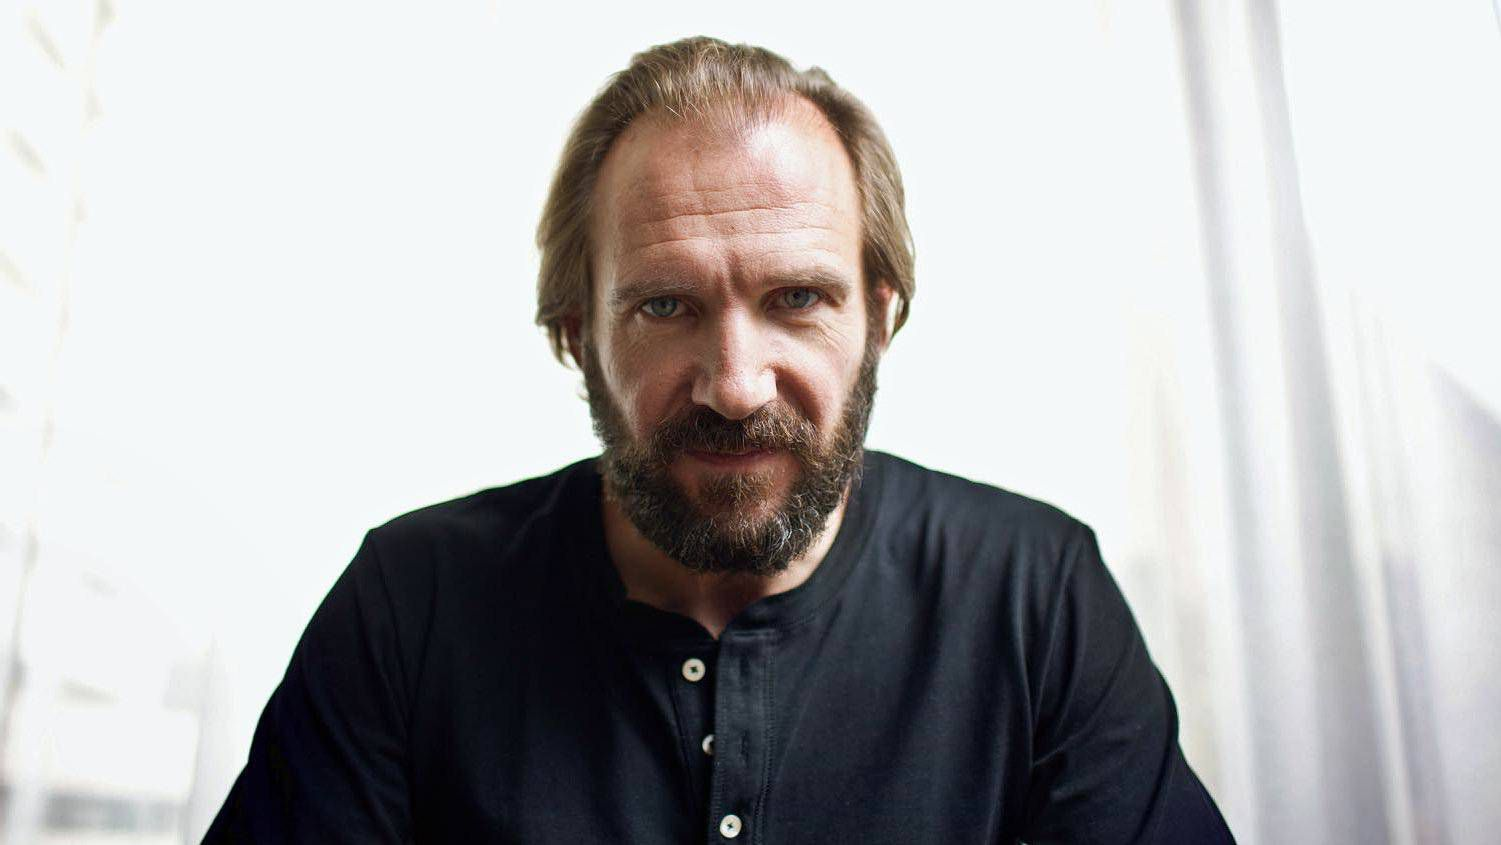 Another face of Ralph Fiennes - The Globe and Mail